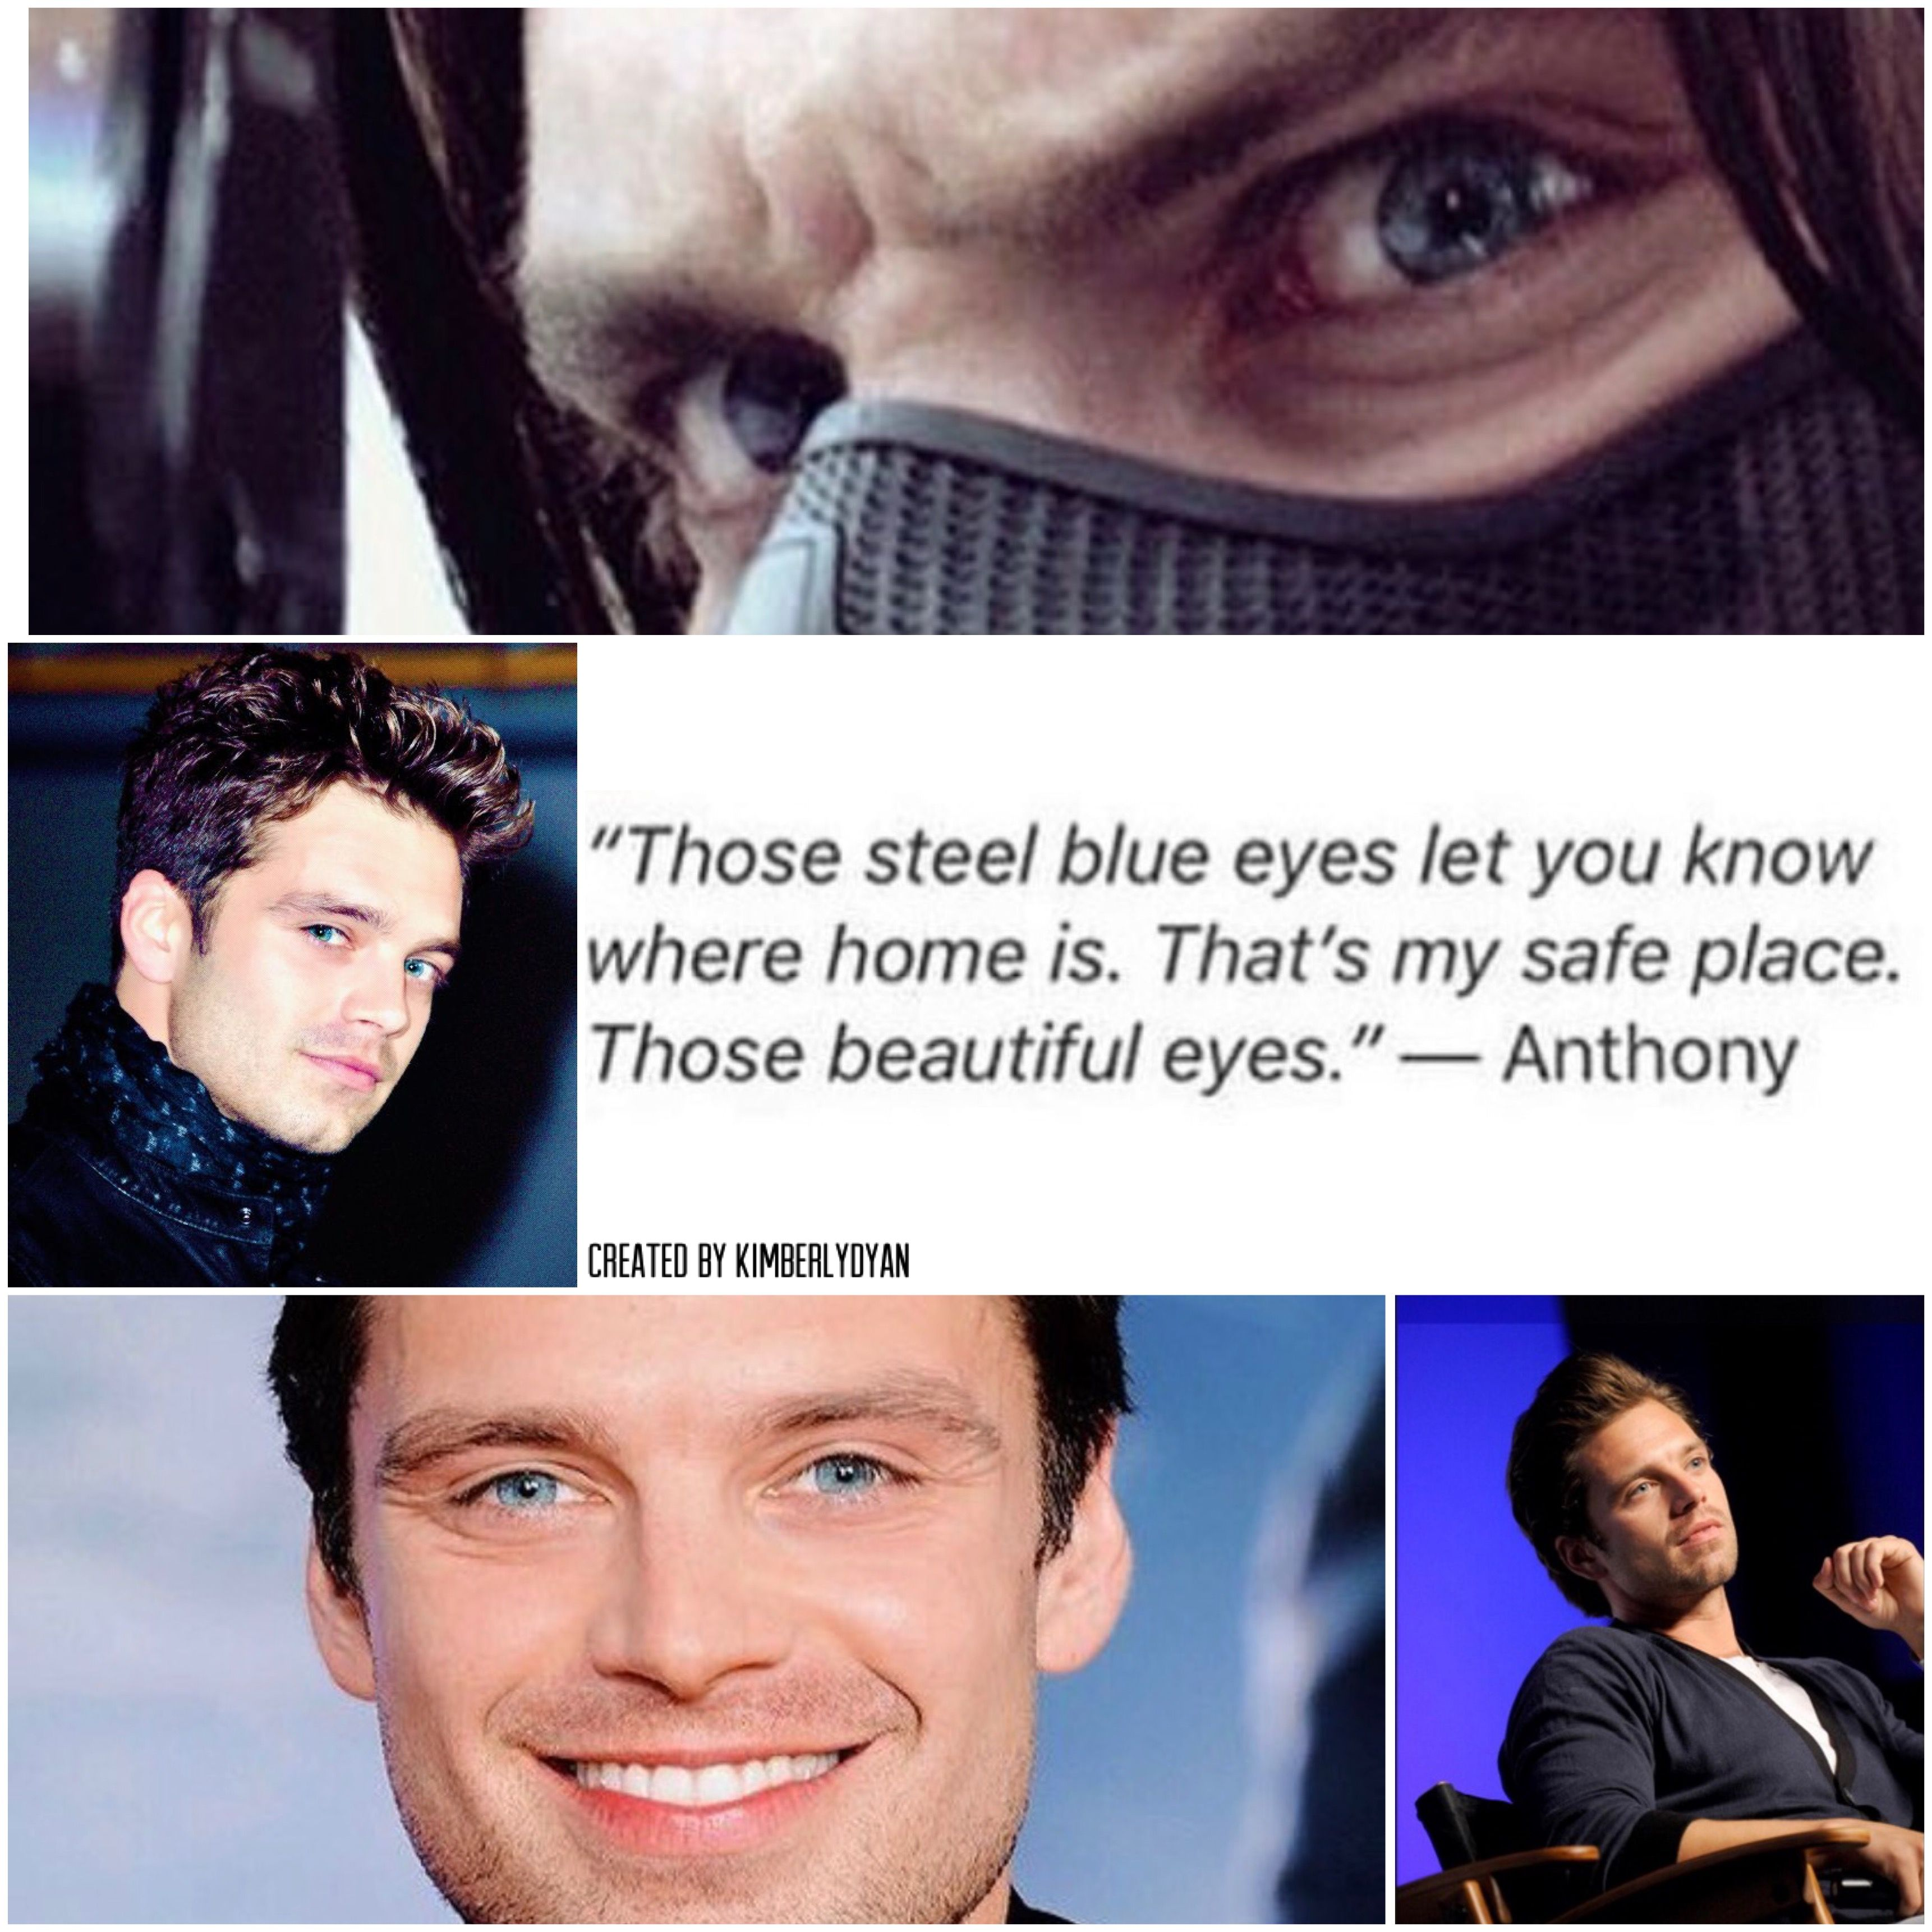 Sebastian ⭐️ Stan and those blue eyes of his created by Kimberlydyan